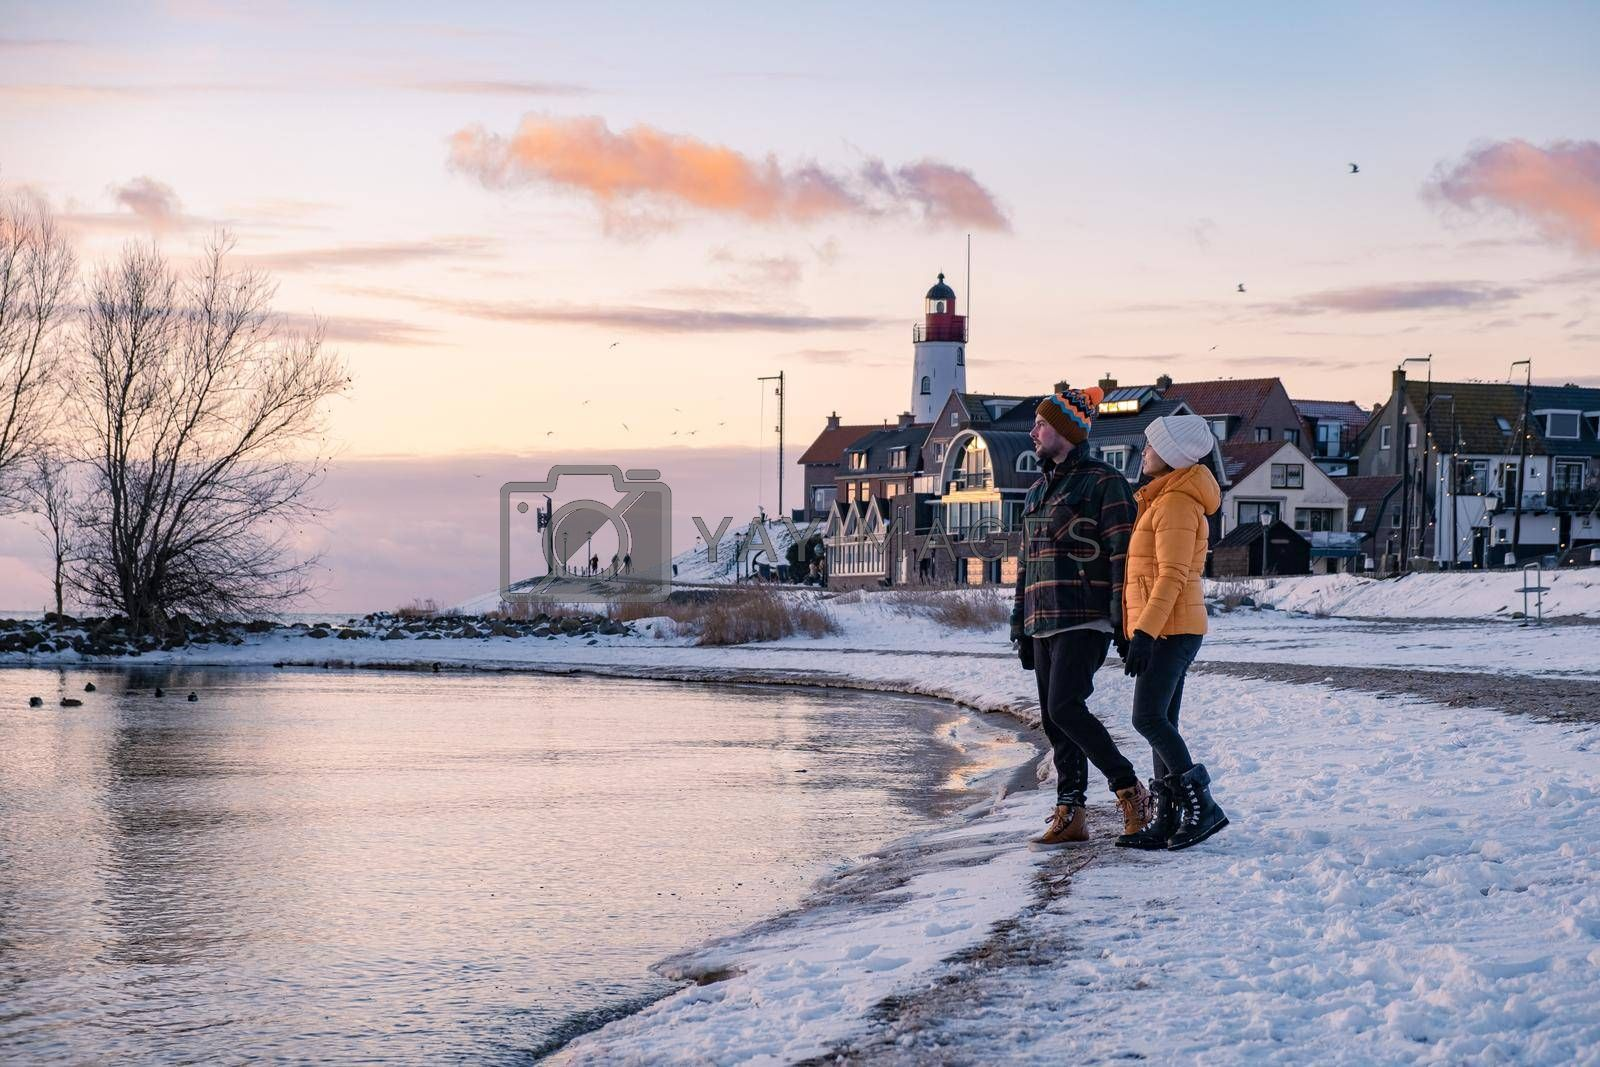 couple men and woman by the lighthouse of Urk Netherlands during winter in the snow. Winter weather in the Netherlands by Urk